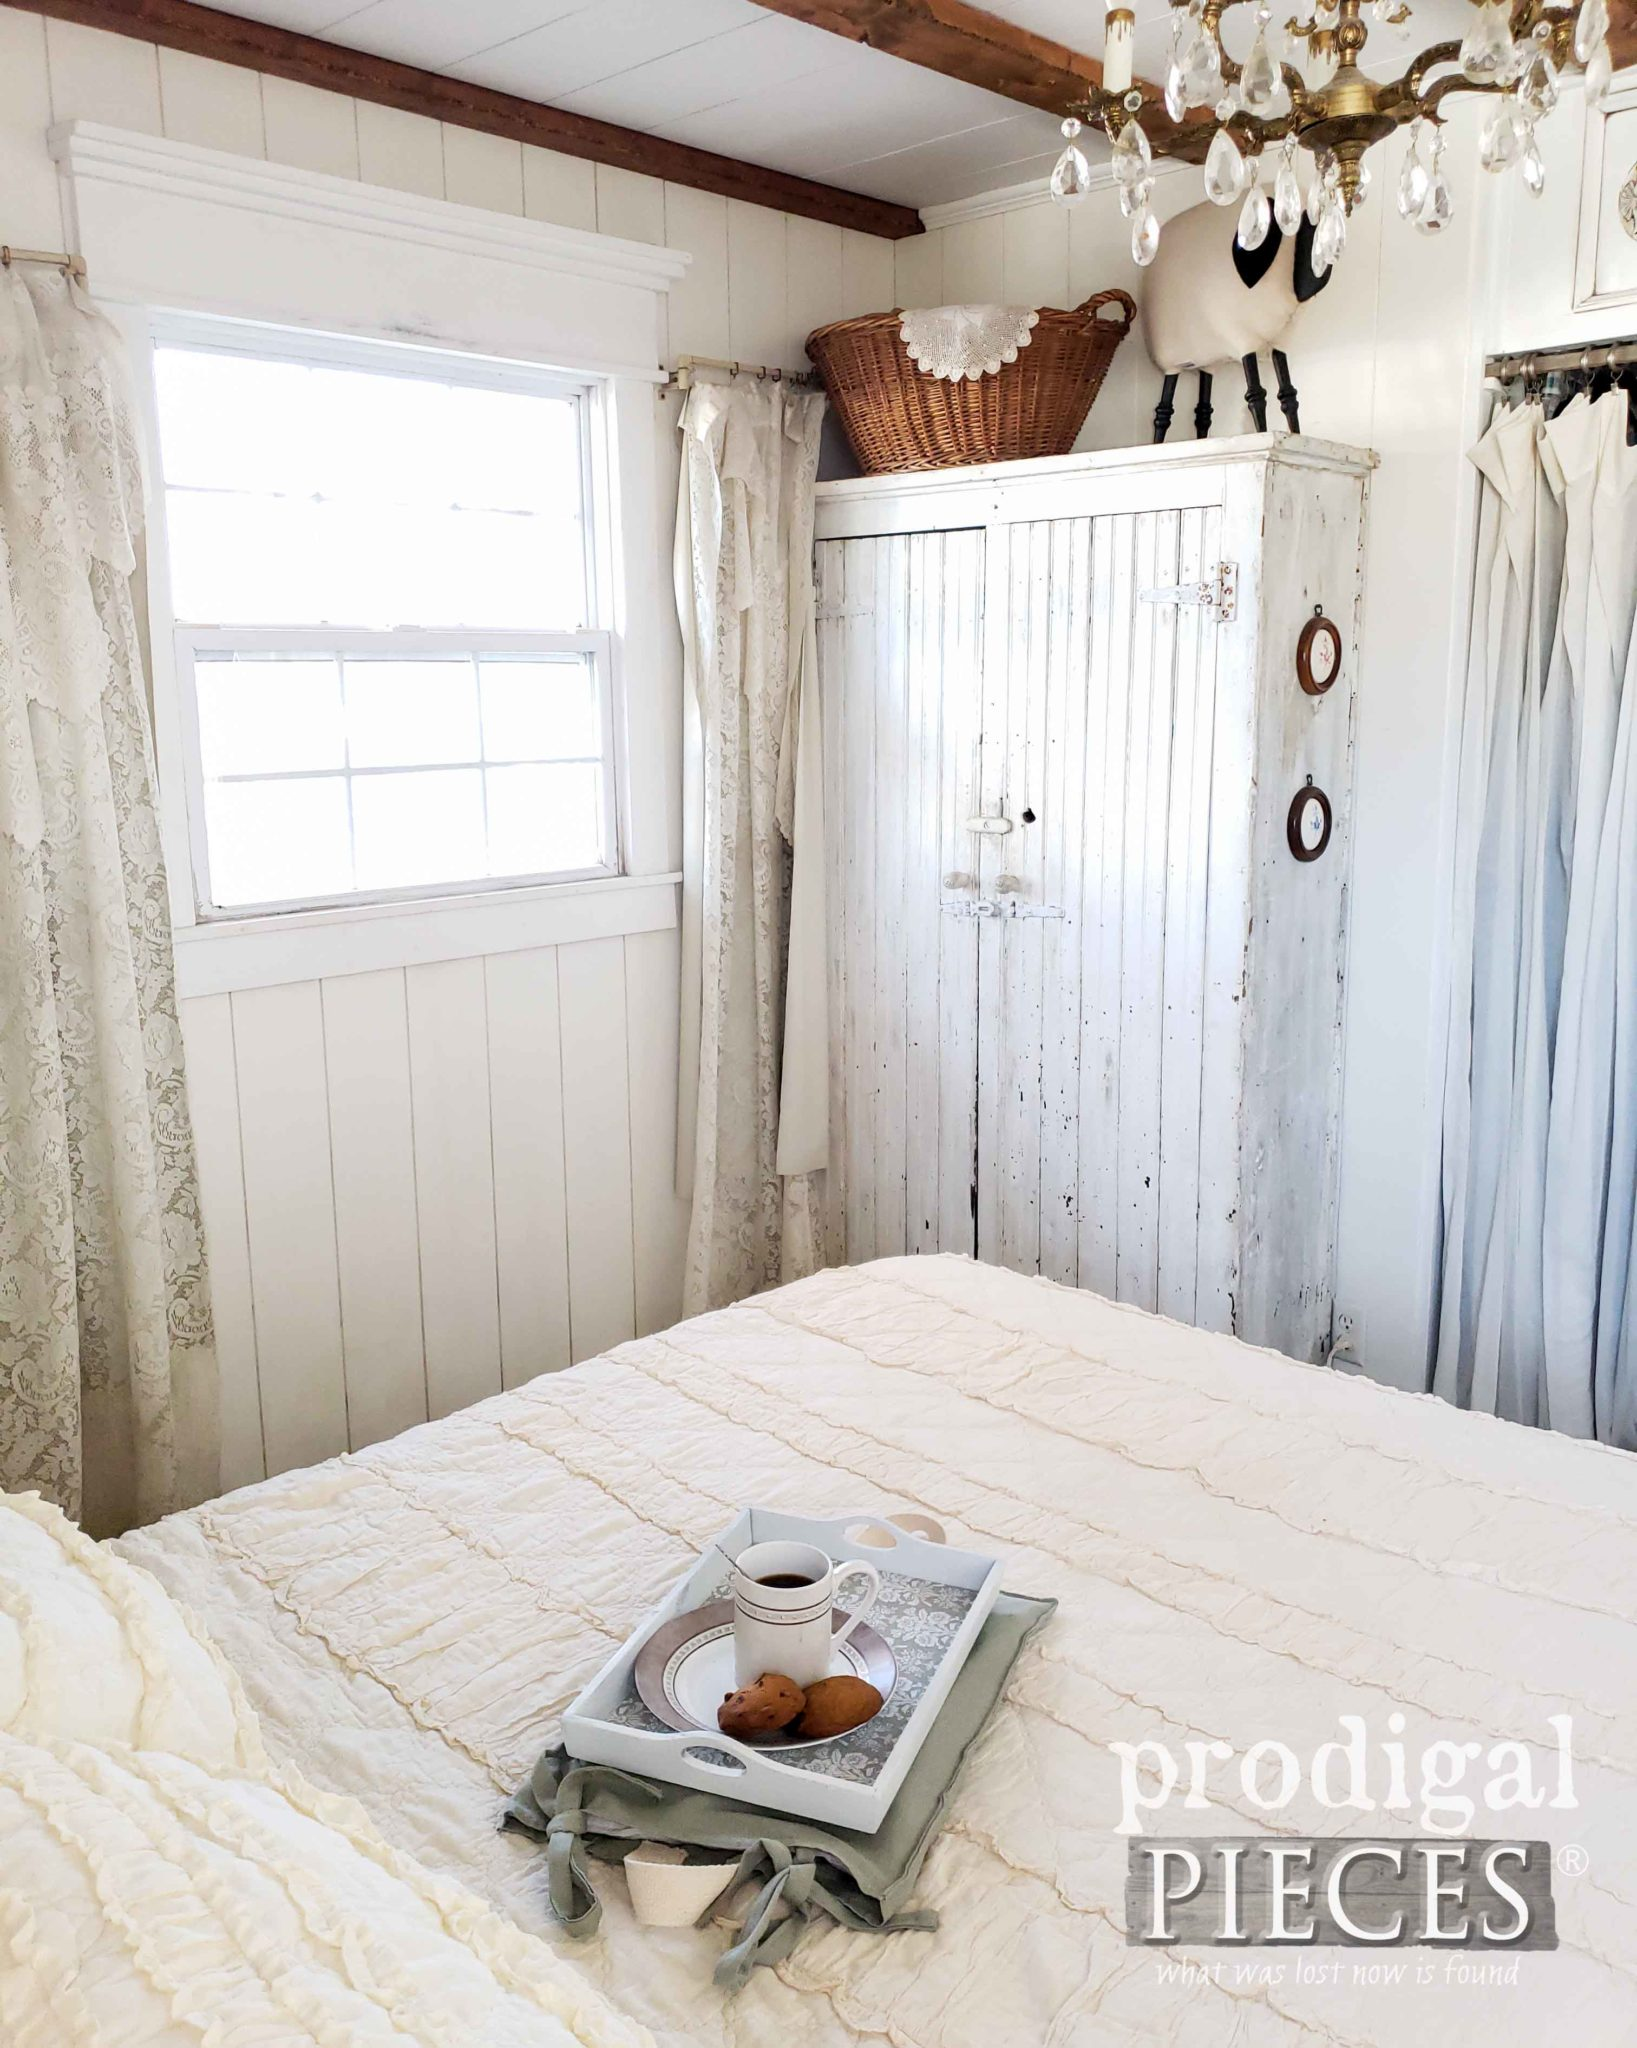 Rustic Farmhouse Chic Bedroom with Chippy Cupboard | Prodigal Pieces | prodigalpieces.com #prodigalpieces #farmhouse #home #homedecor #homedecorideas